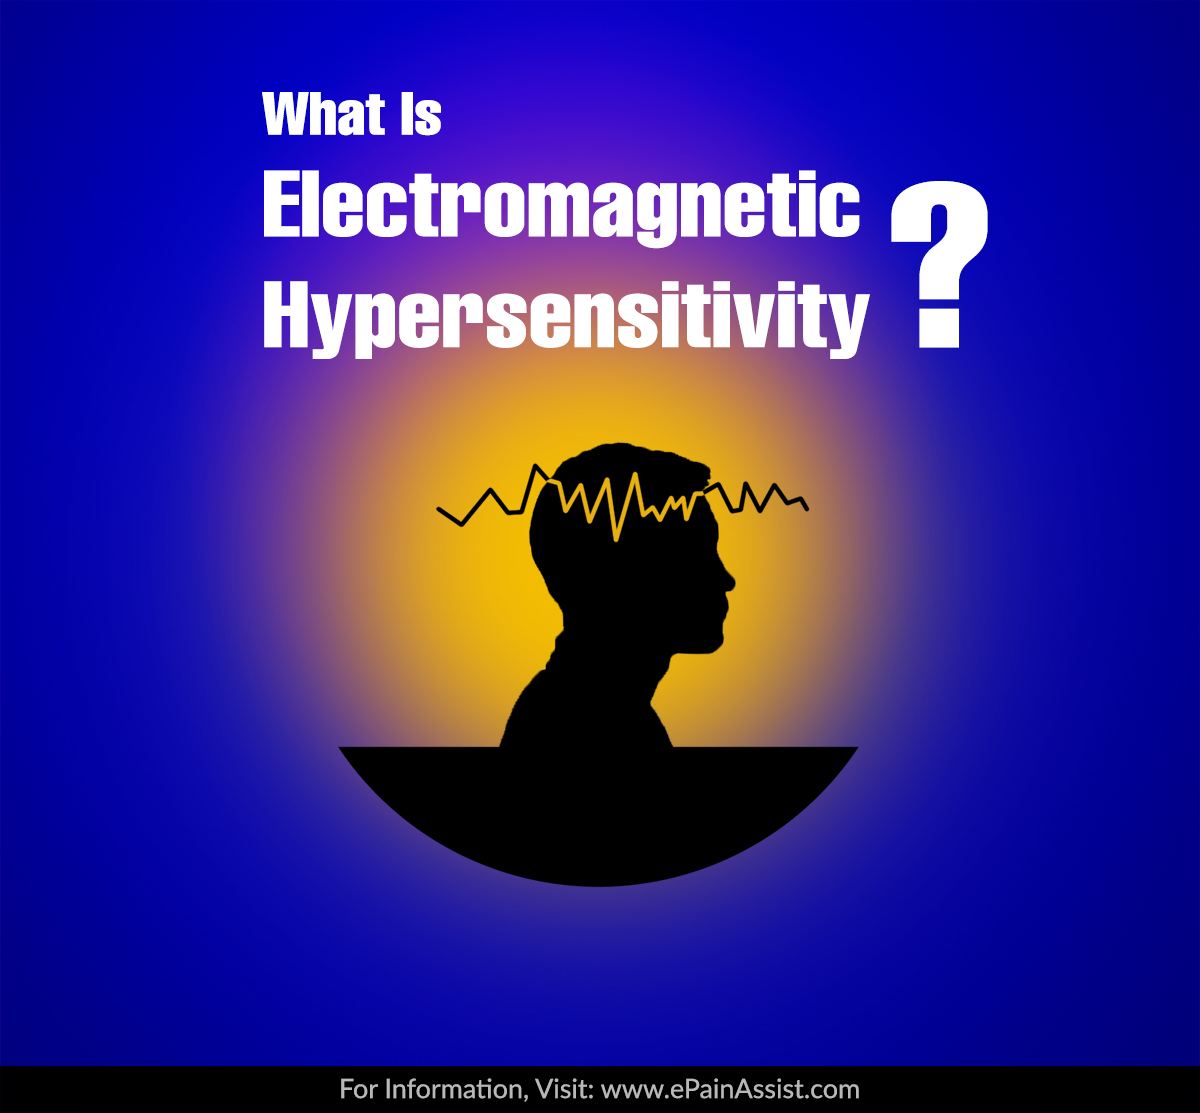 What Is Electromagnetic Hypersensitivity?